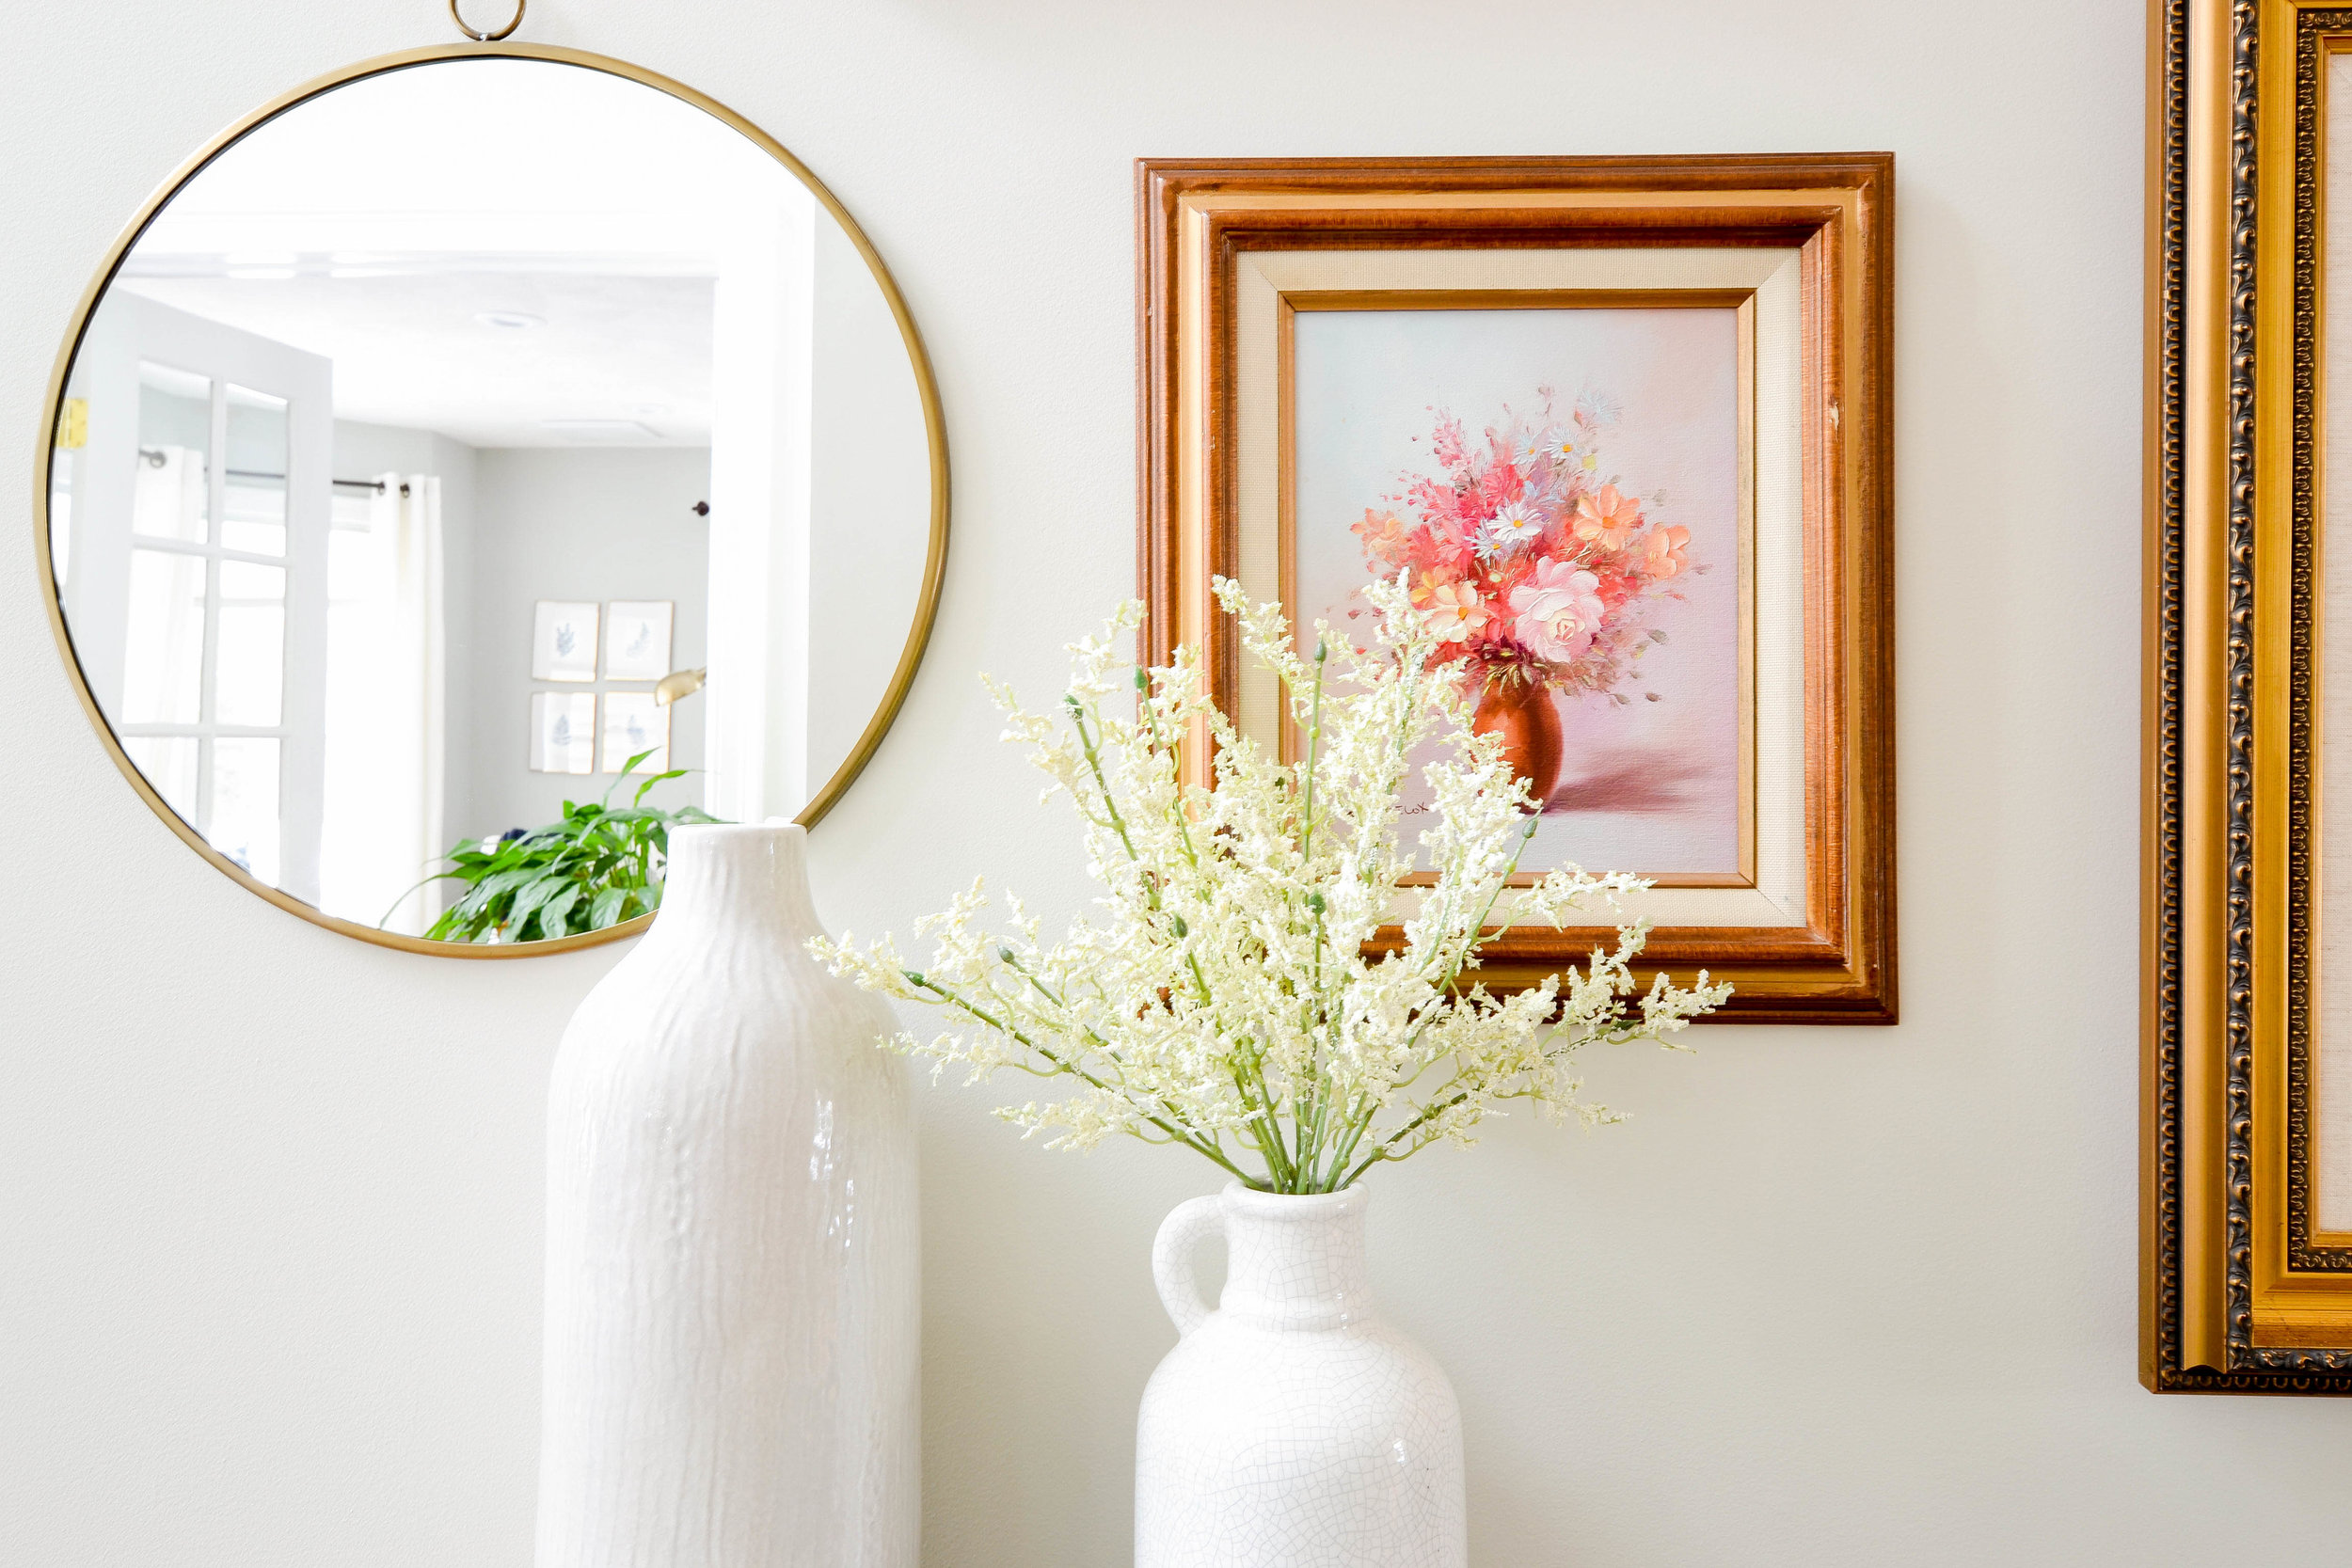 Gray Oak Studio Homestead Entryway - White vases and flowers